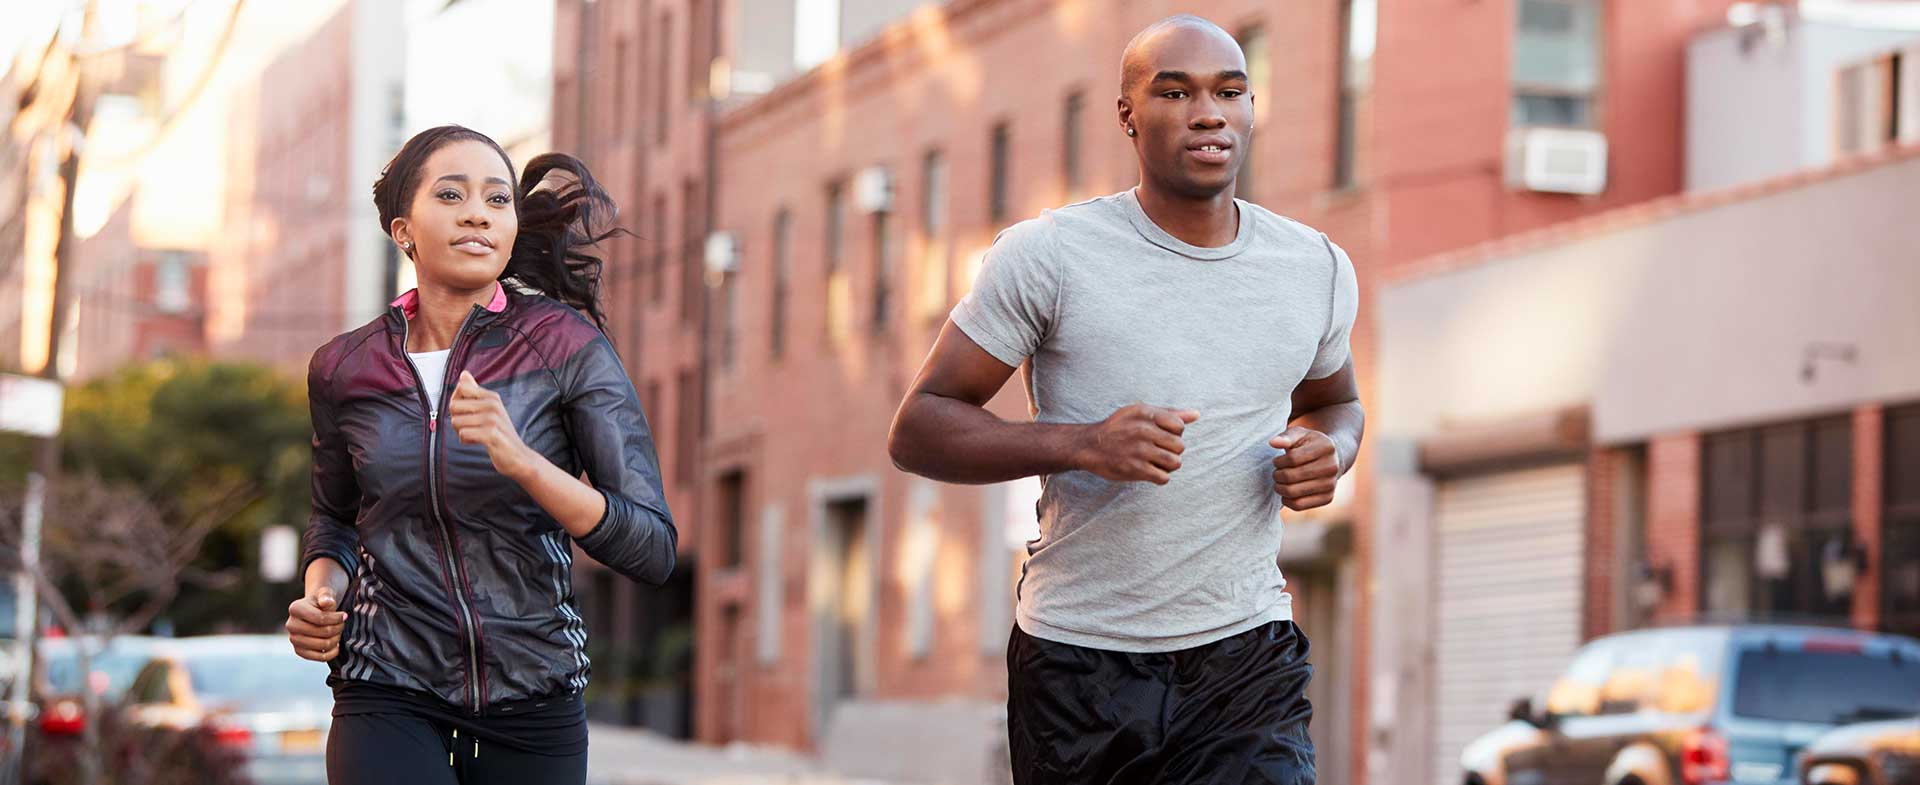 couple running for exercise